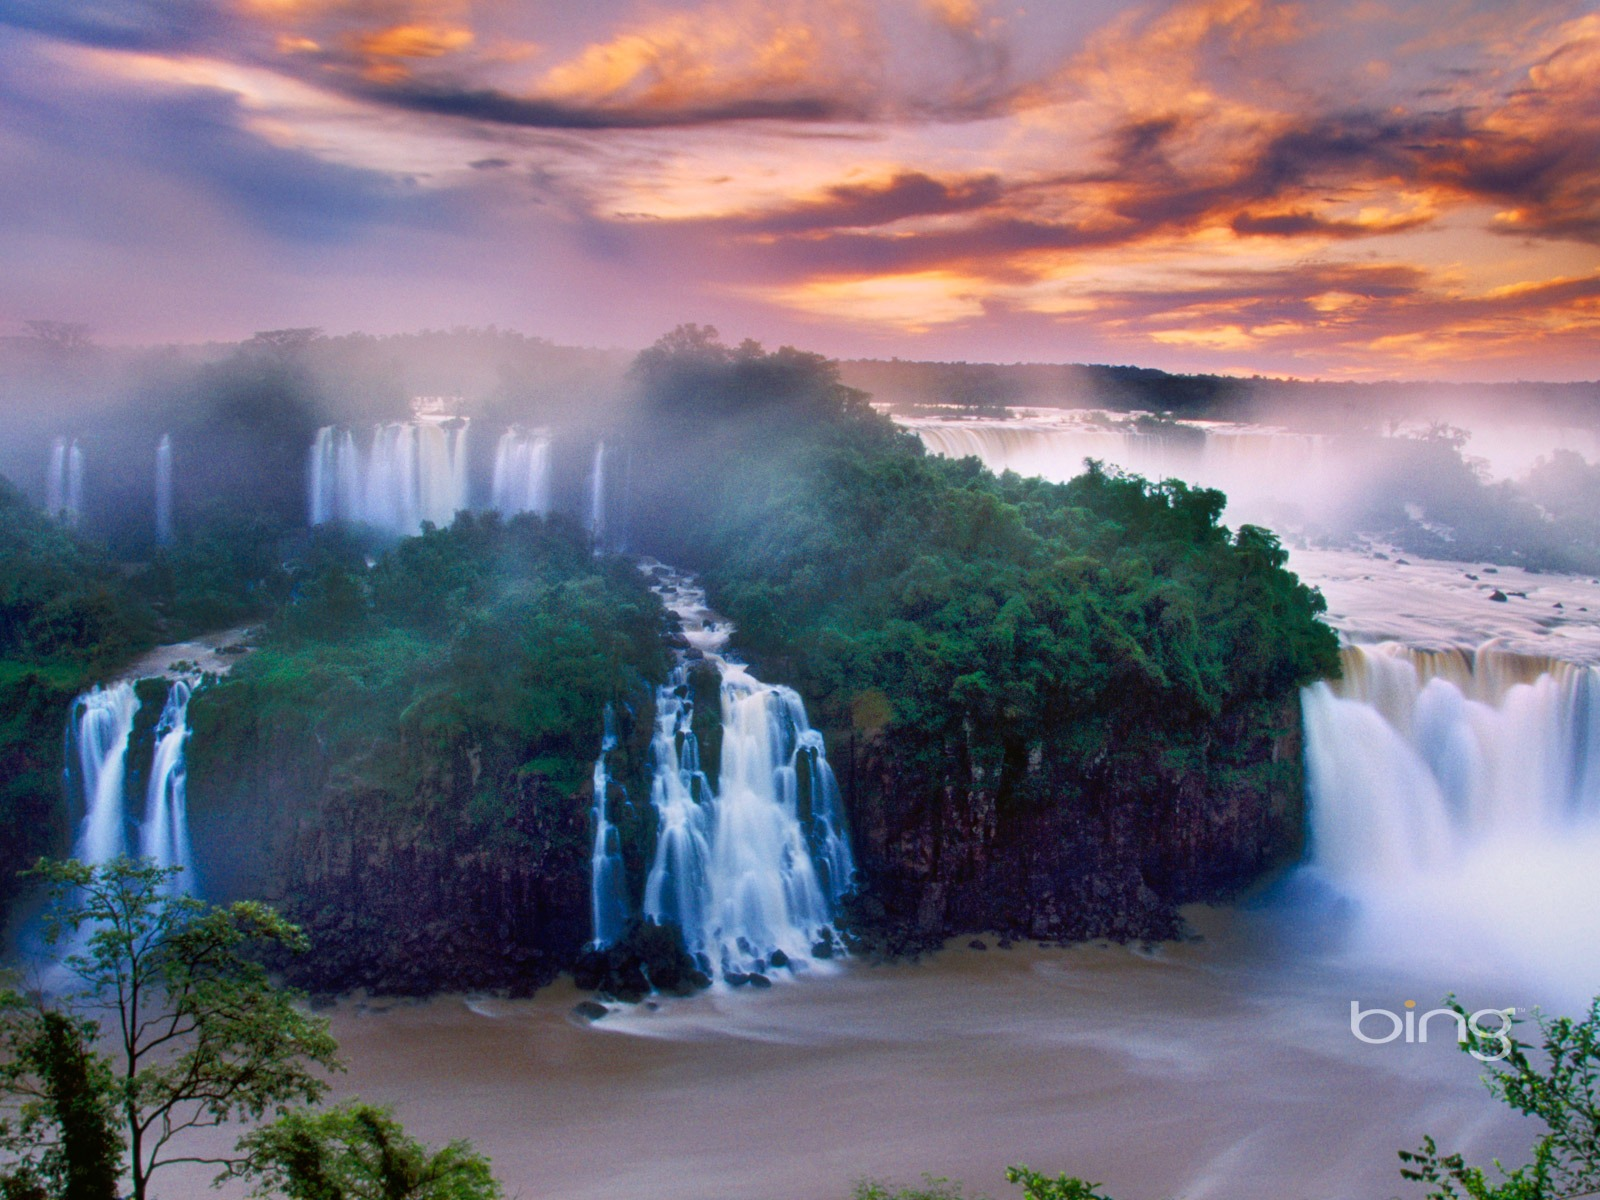 Spectacular Waterfalls 2013 Bing Widescreen Wallpaper Preview 10wallpaper Com